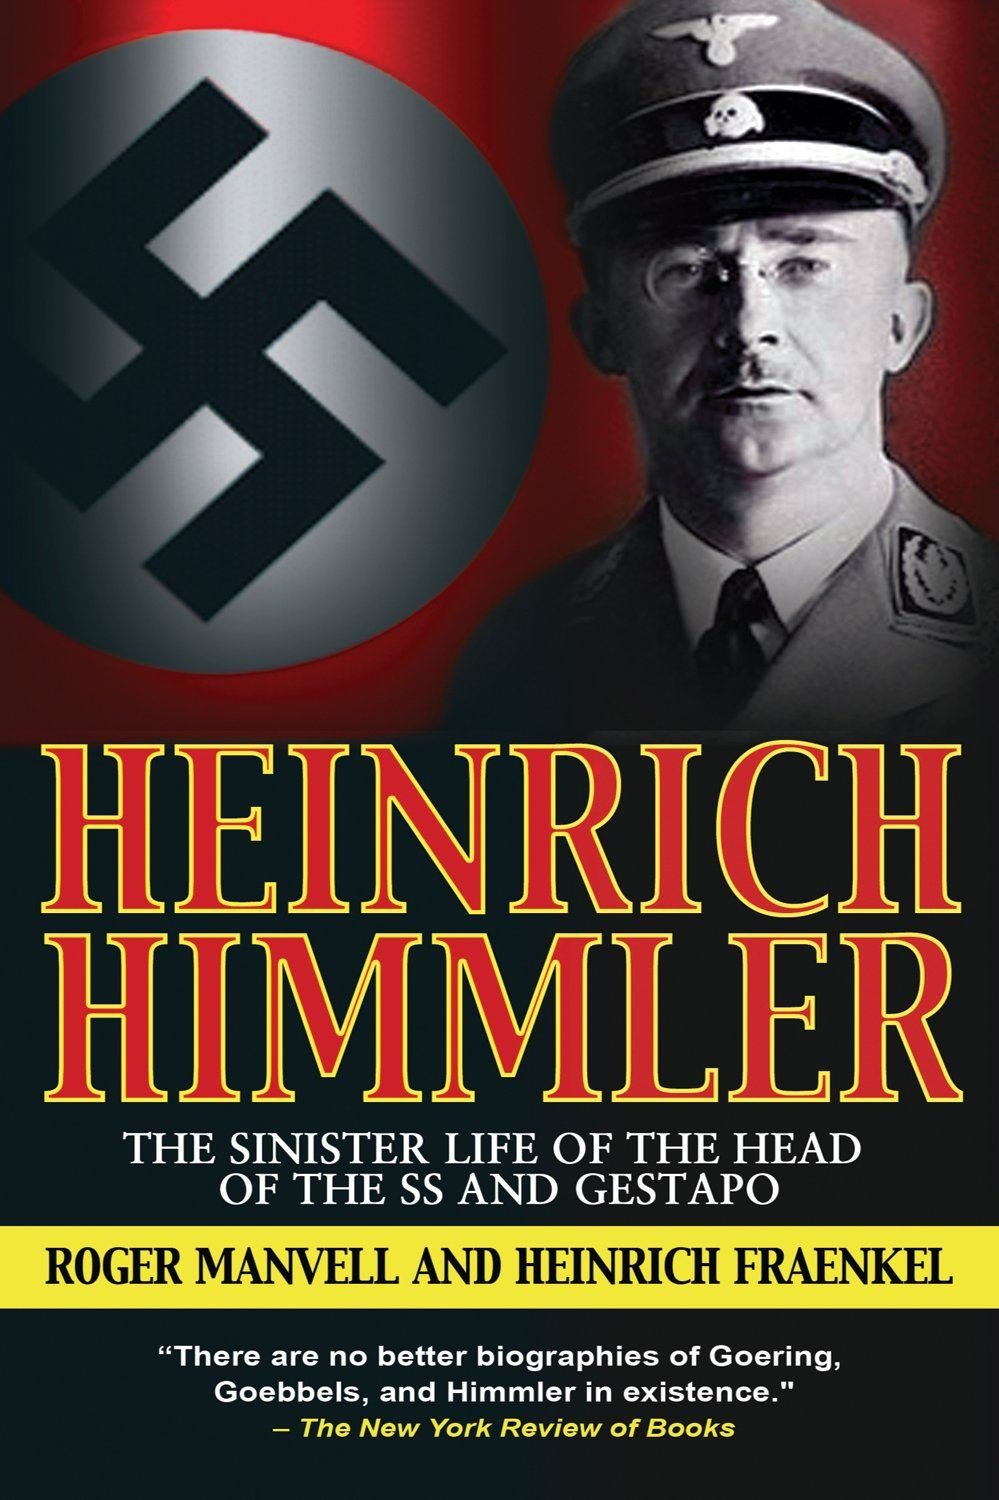 Heinrich Himmler: The SS, Gestapo, His Life and Career By: Roger Manvell, Heinrich Frankel